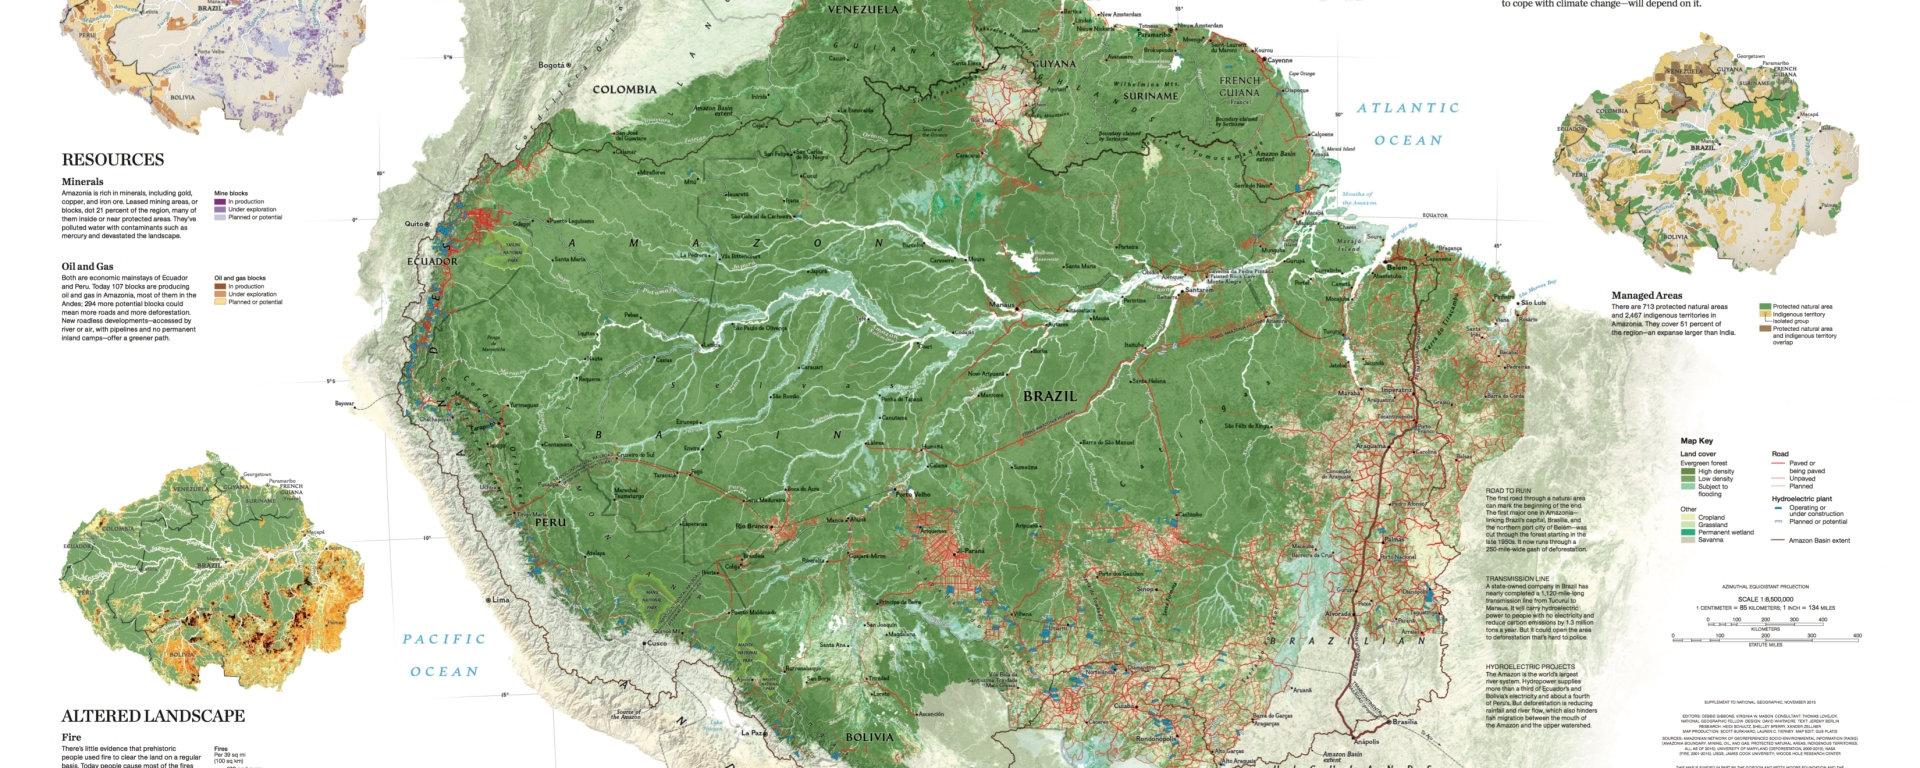 The Amazon Rain Forest Is Not an Untamed Jungle – National ... on google map, deforestation map, kilimanjaro map, costa rica map, nile map, la paz capital map, danube river map, indus river map, congo river map, yellow river map, yangtze map, brazil map, orinoco map, atacama desert map, rio grande map, andes map, himalayas map, pampas map, buenos aires map, brazilian highlands map,